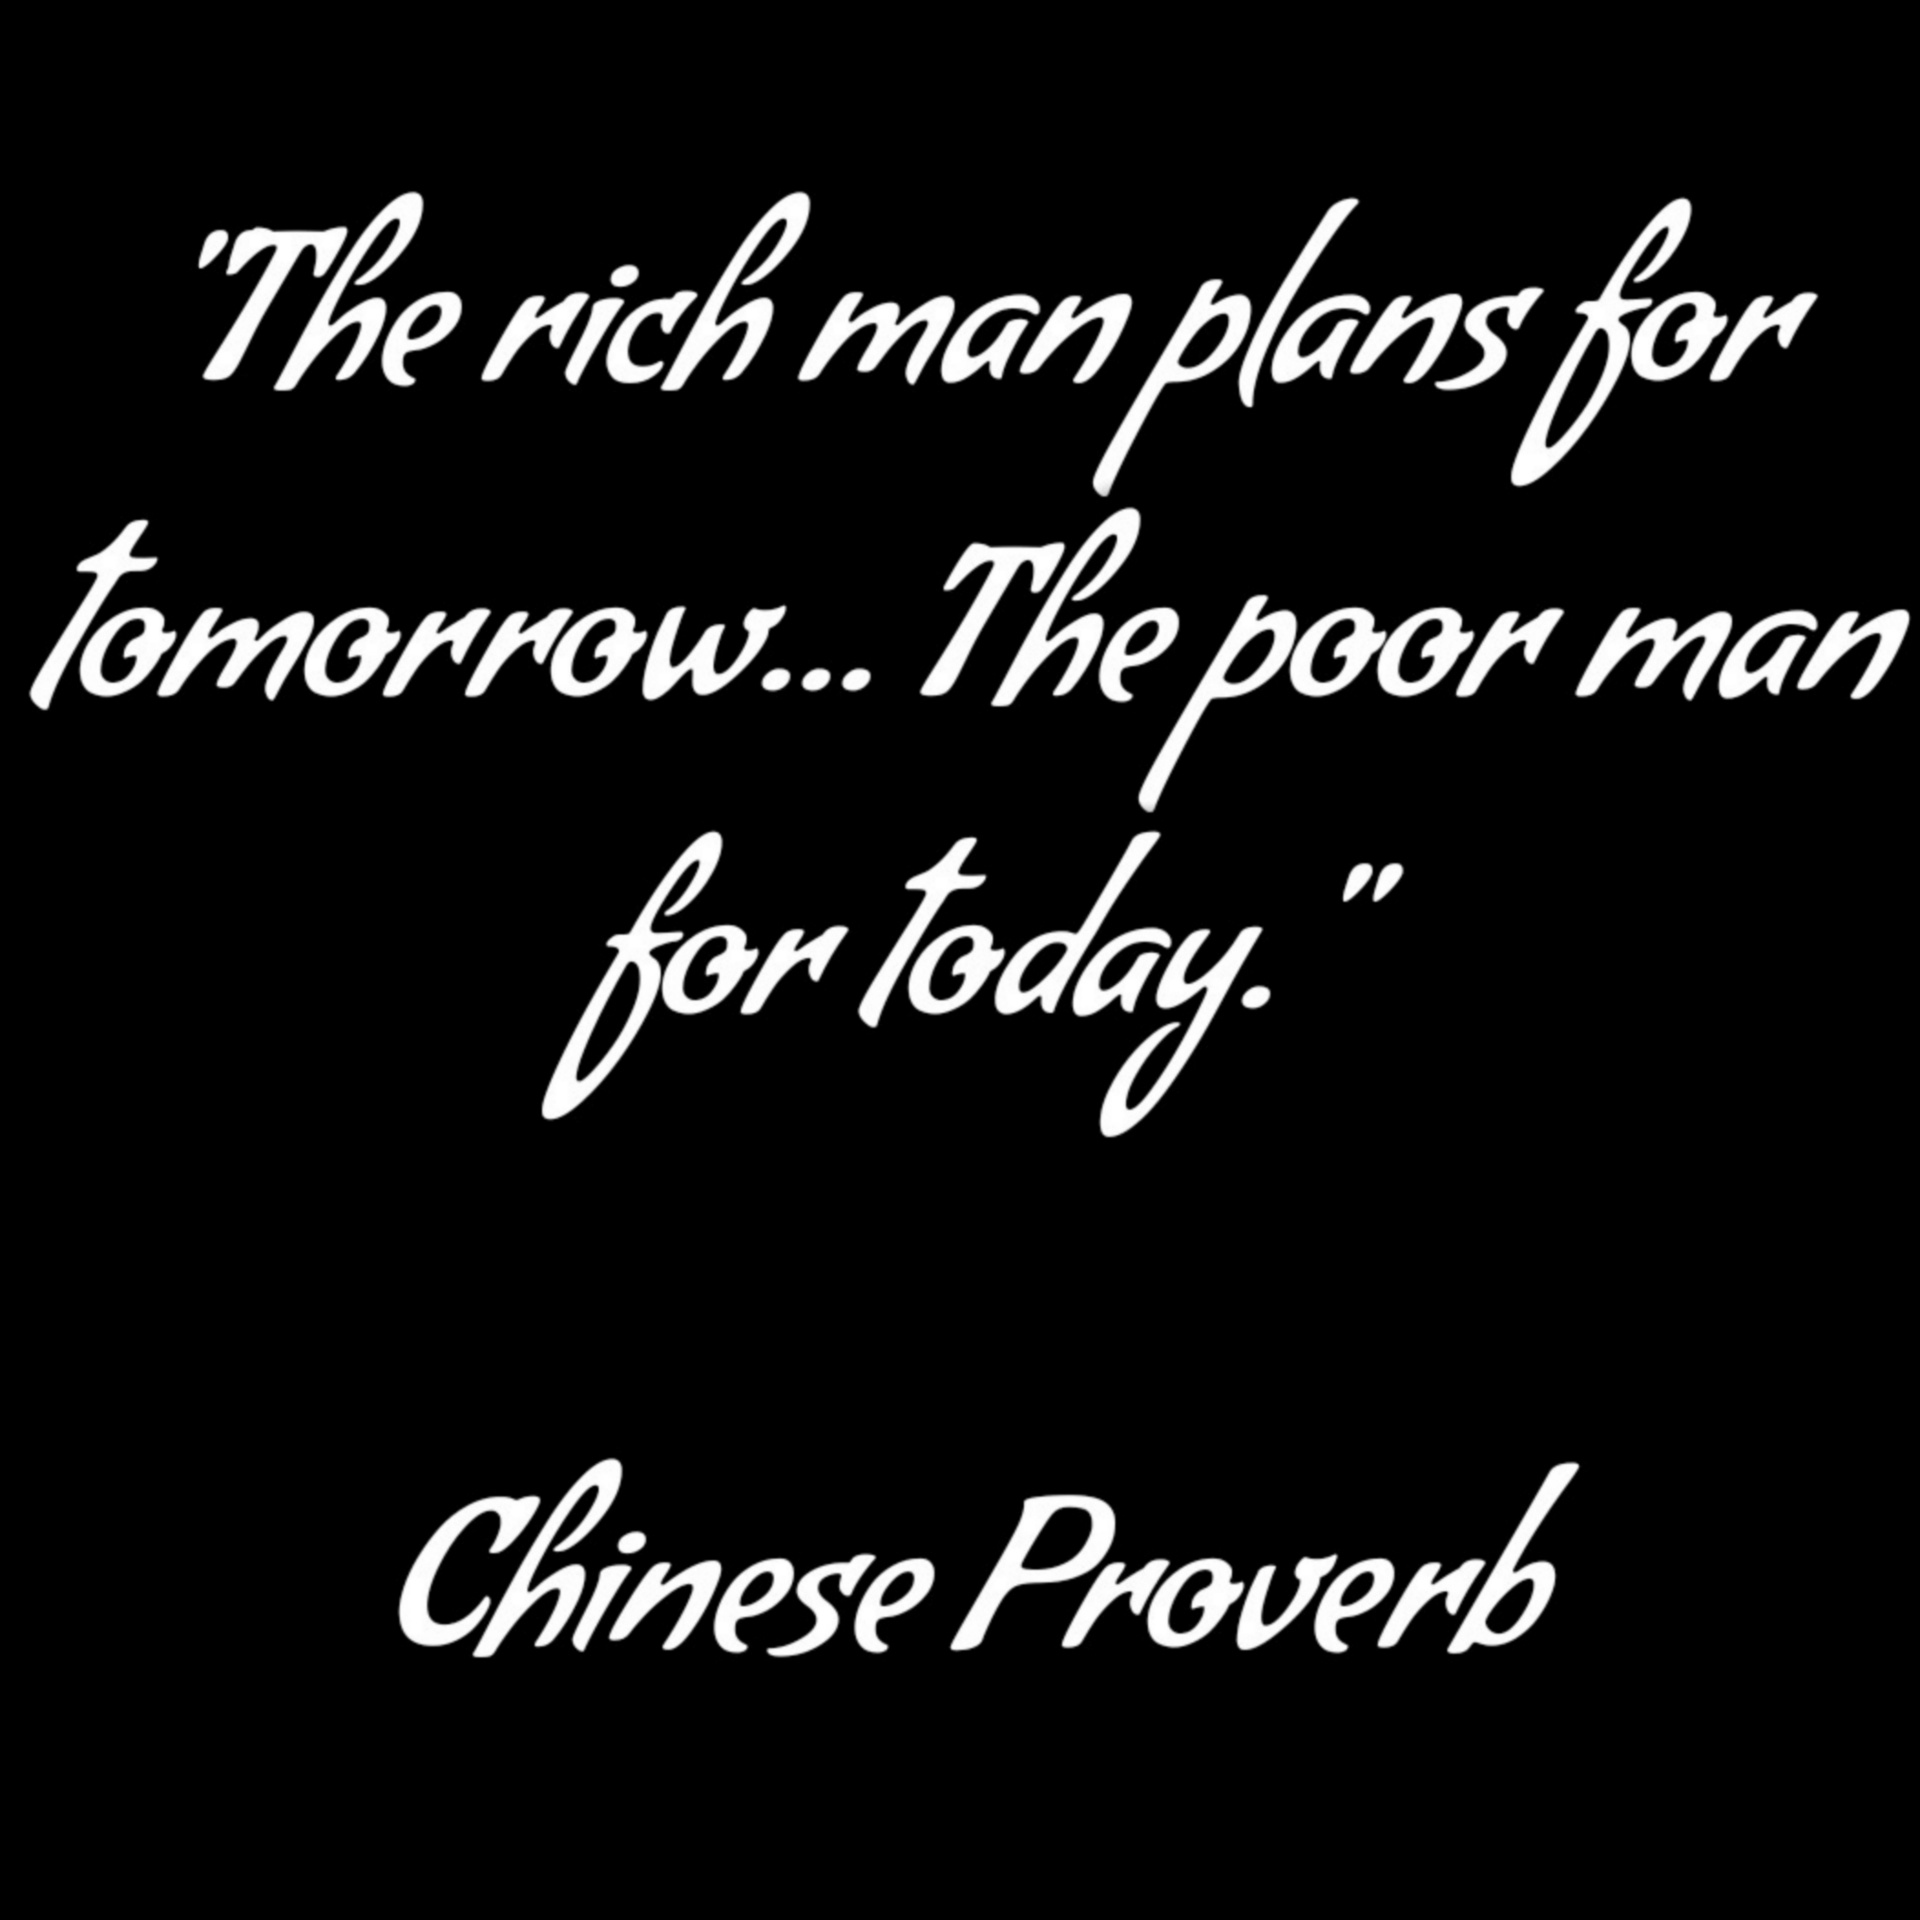 proverb-on-plans.jpg